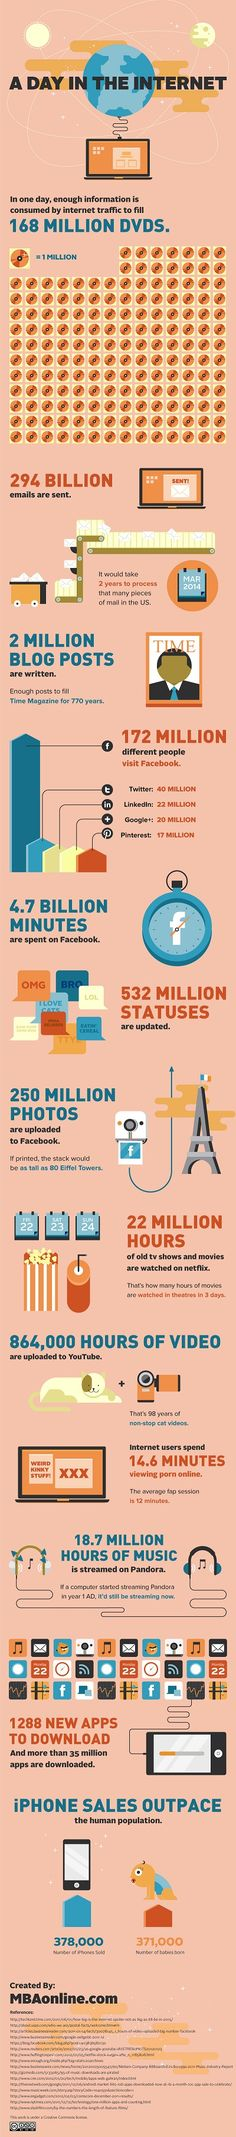 A Day In The Internet [INFOGRAPHIC]